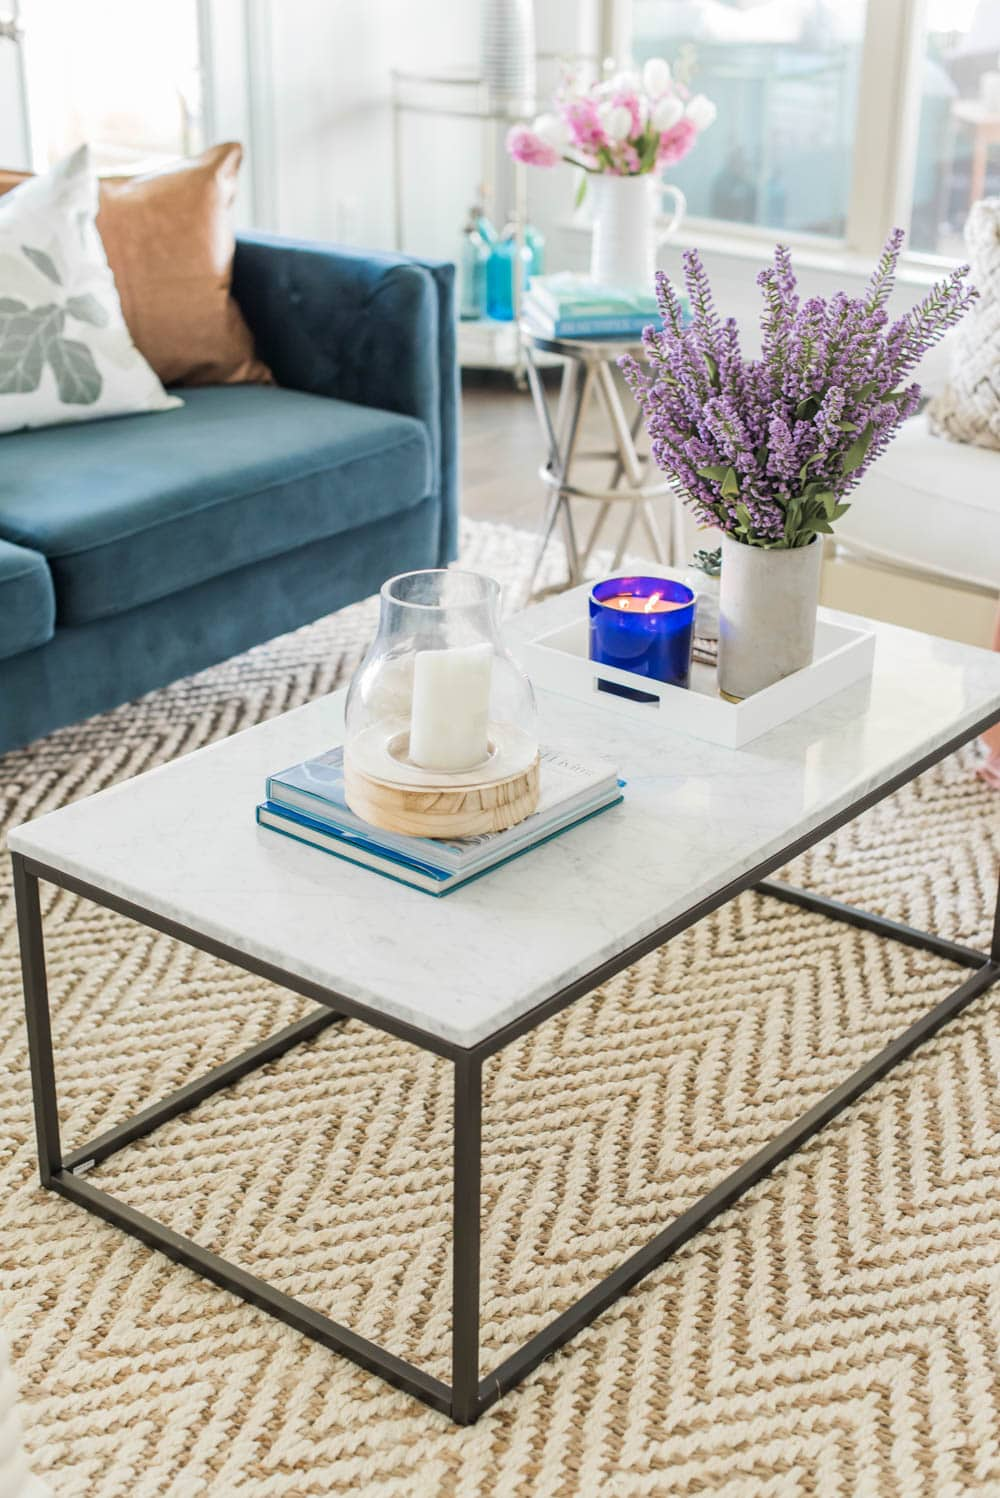 How to Arrange Furniture + Plan a New Space in Your Home